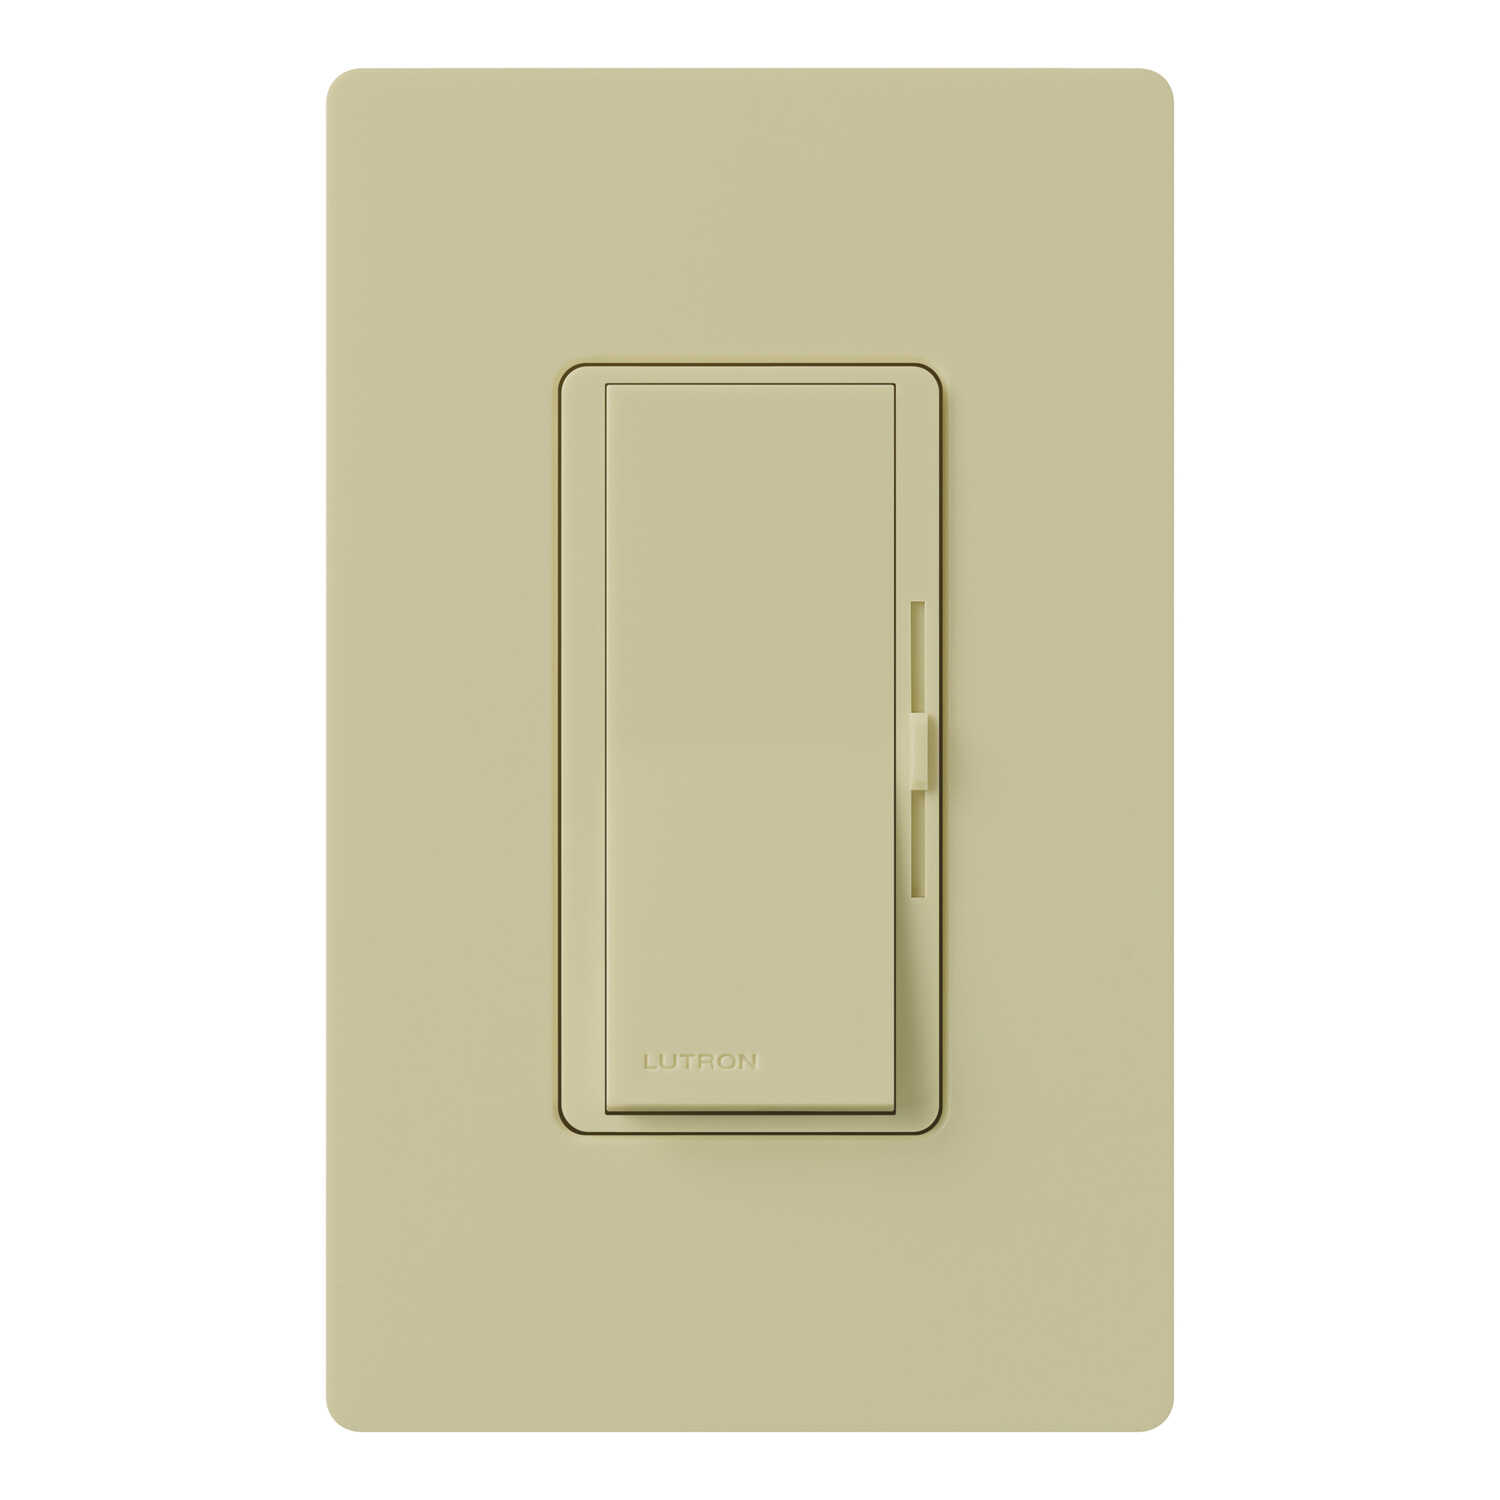 Lutron  Diva  600 watts Slide  Dimmer Switch  1  Ivory